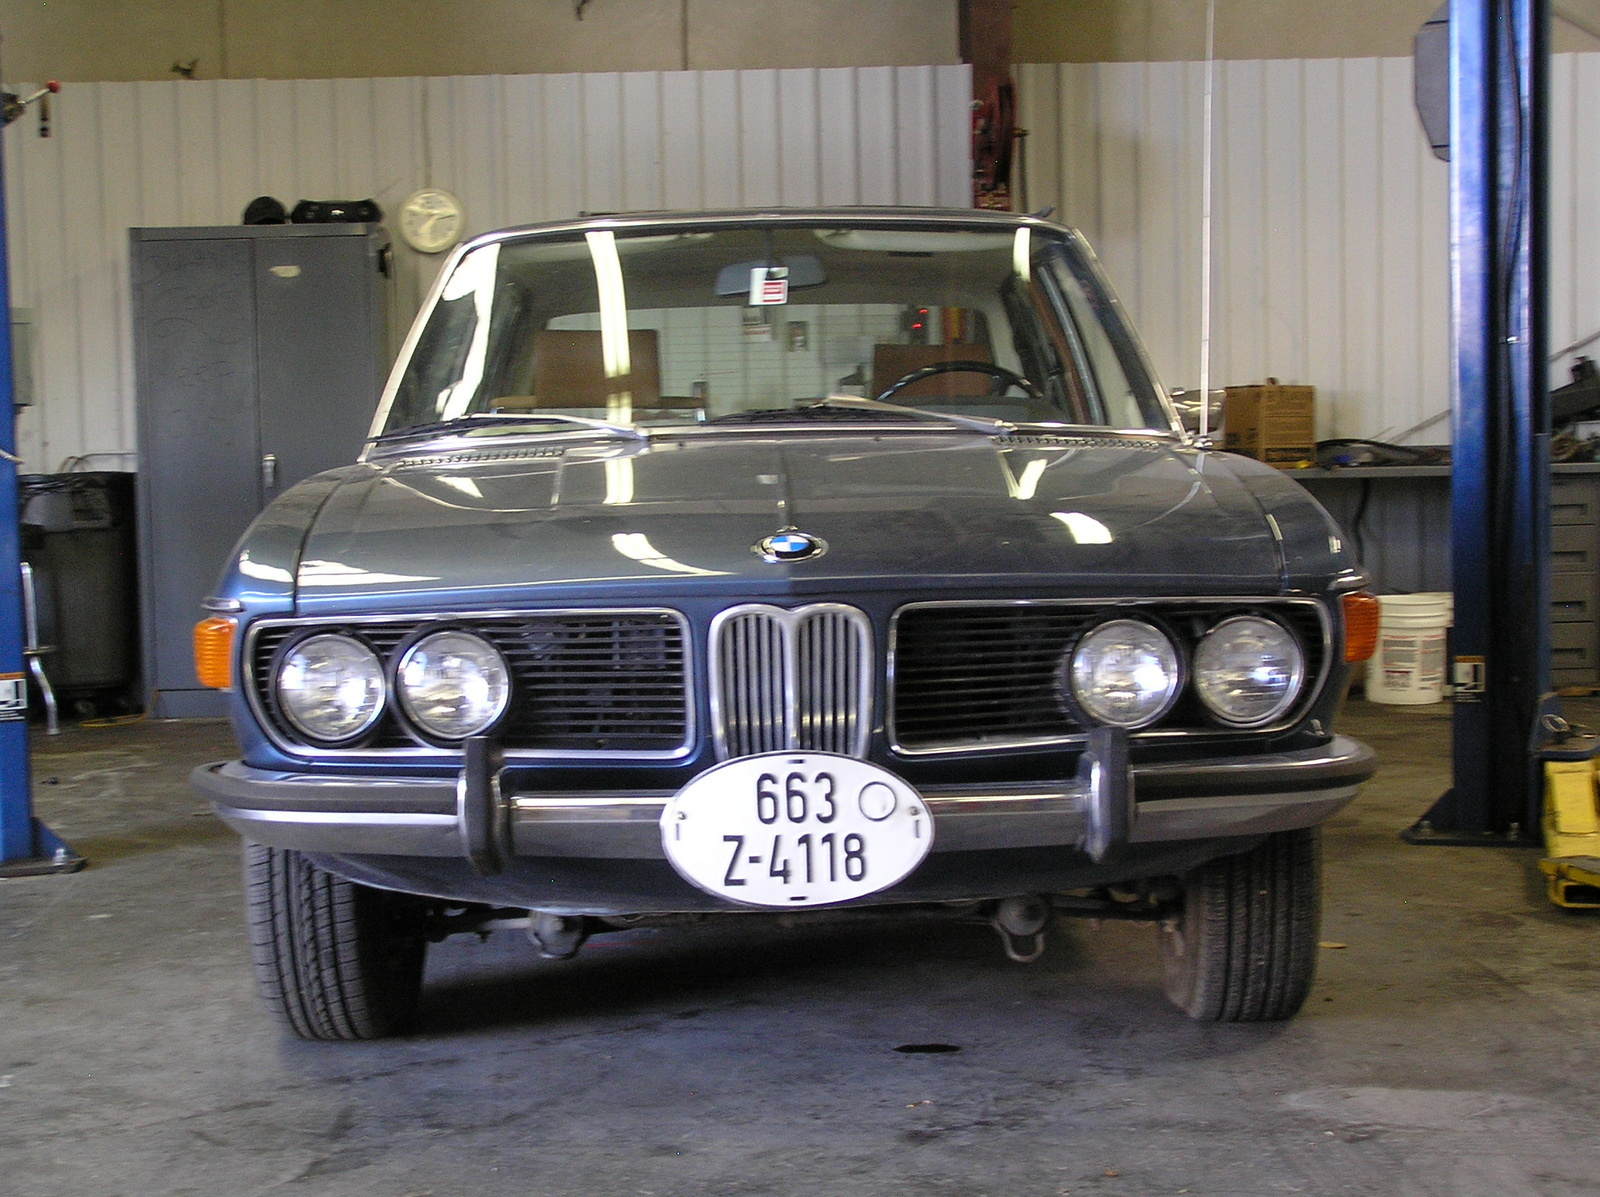 Bmw 7 Series Questions I Need To Use My 2012 Bmw 750 To Charge My